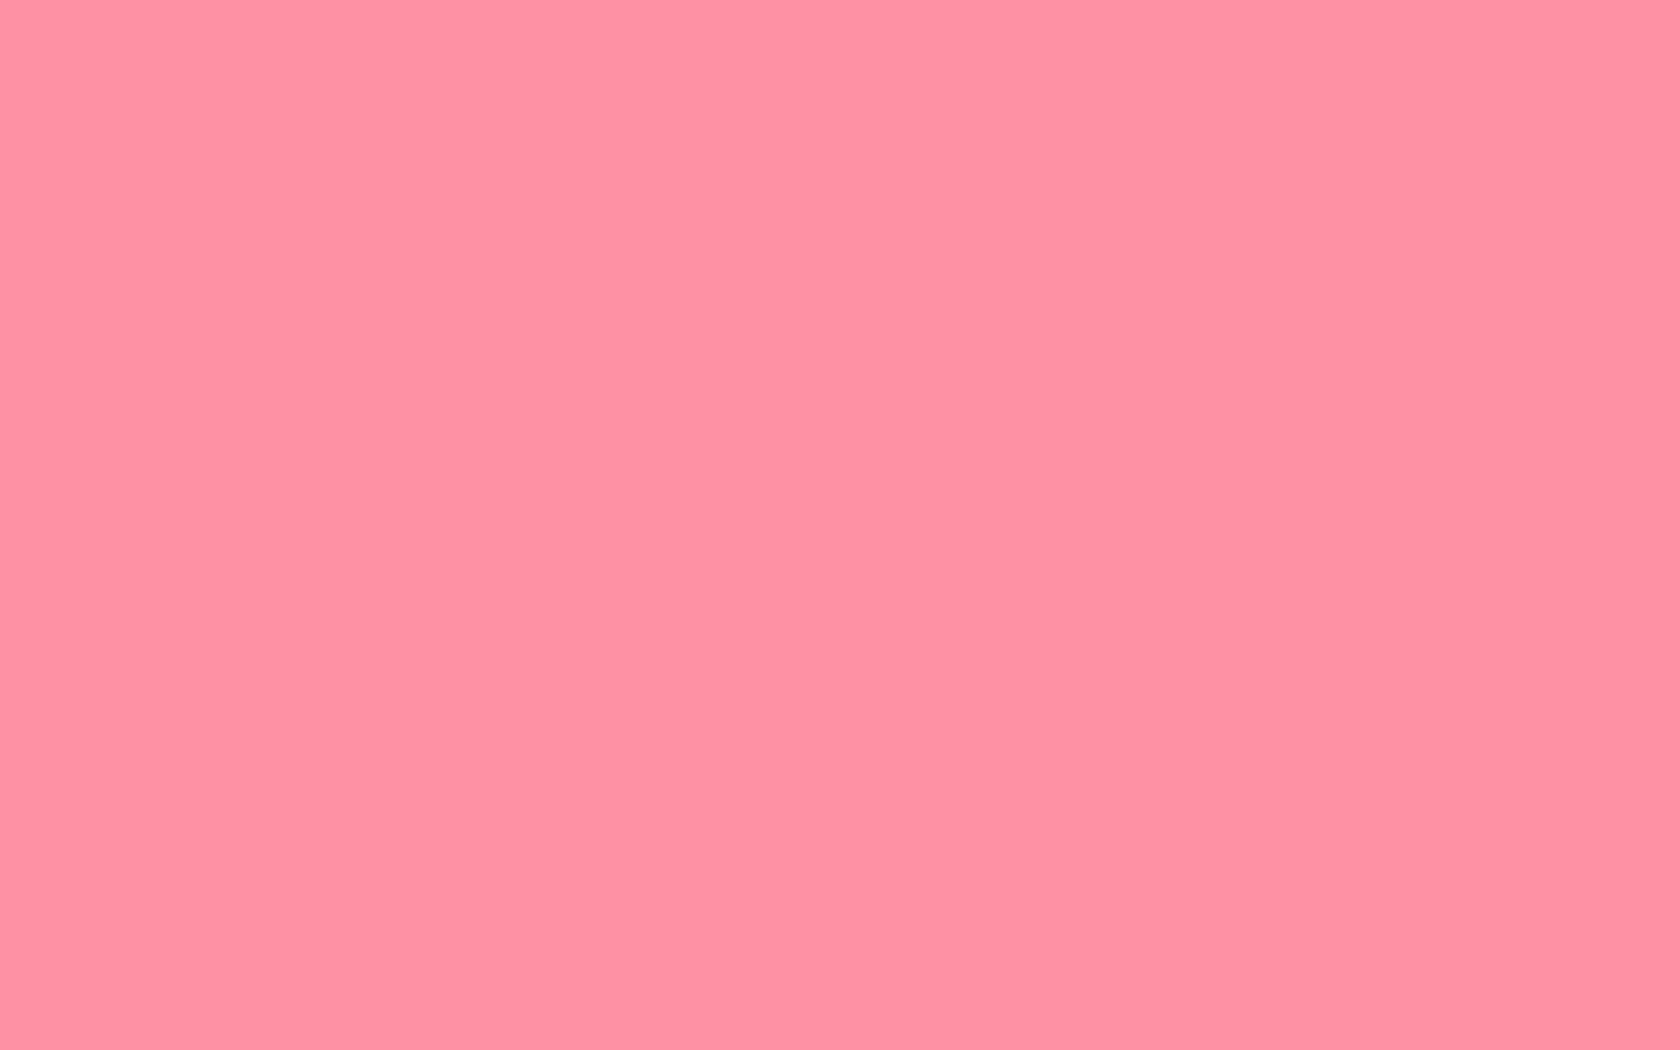 1680x1050 Salmon Pink Solid Color Background